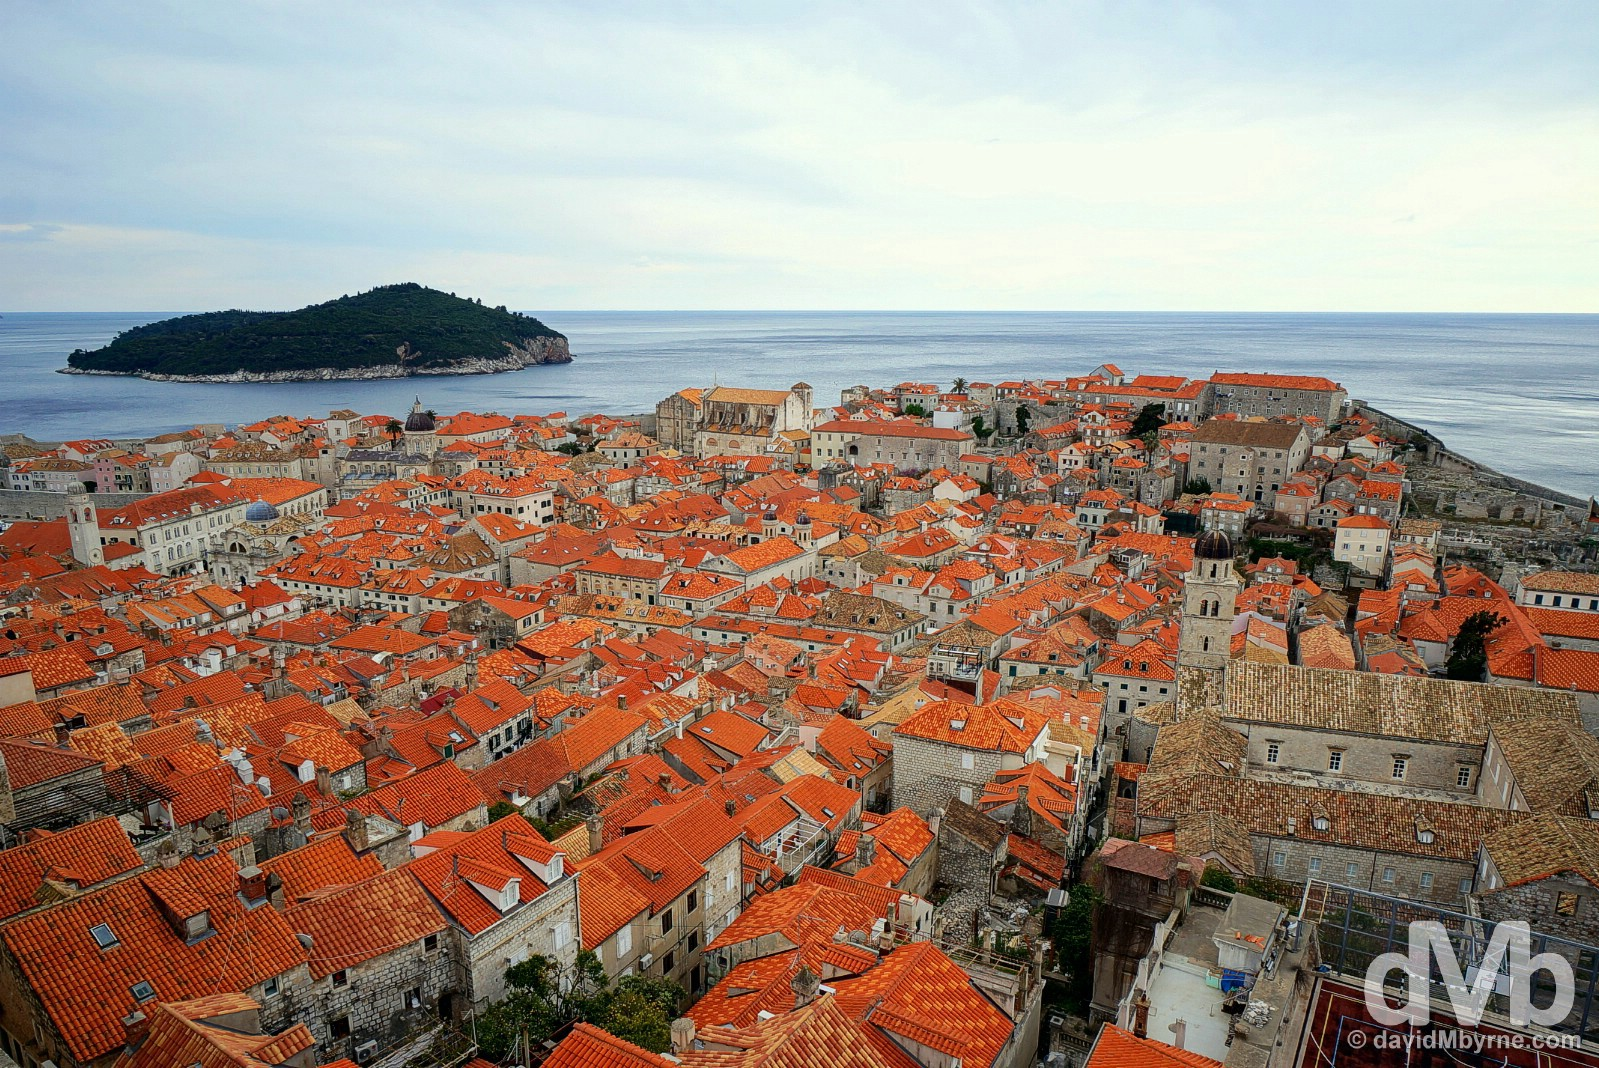 Old Town Dubrovnik as seen from the Old Town walls. Dubrovnik, Croatia. April 7, 2015.